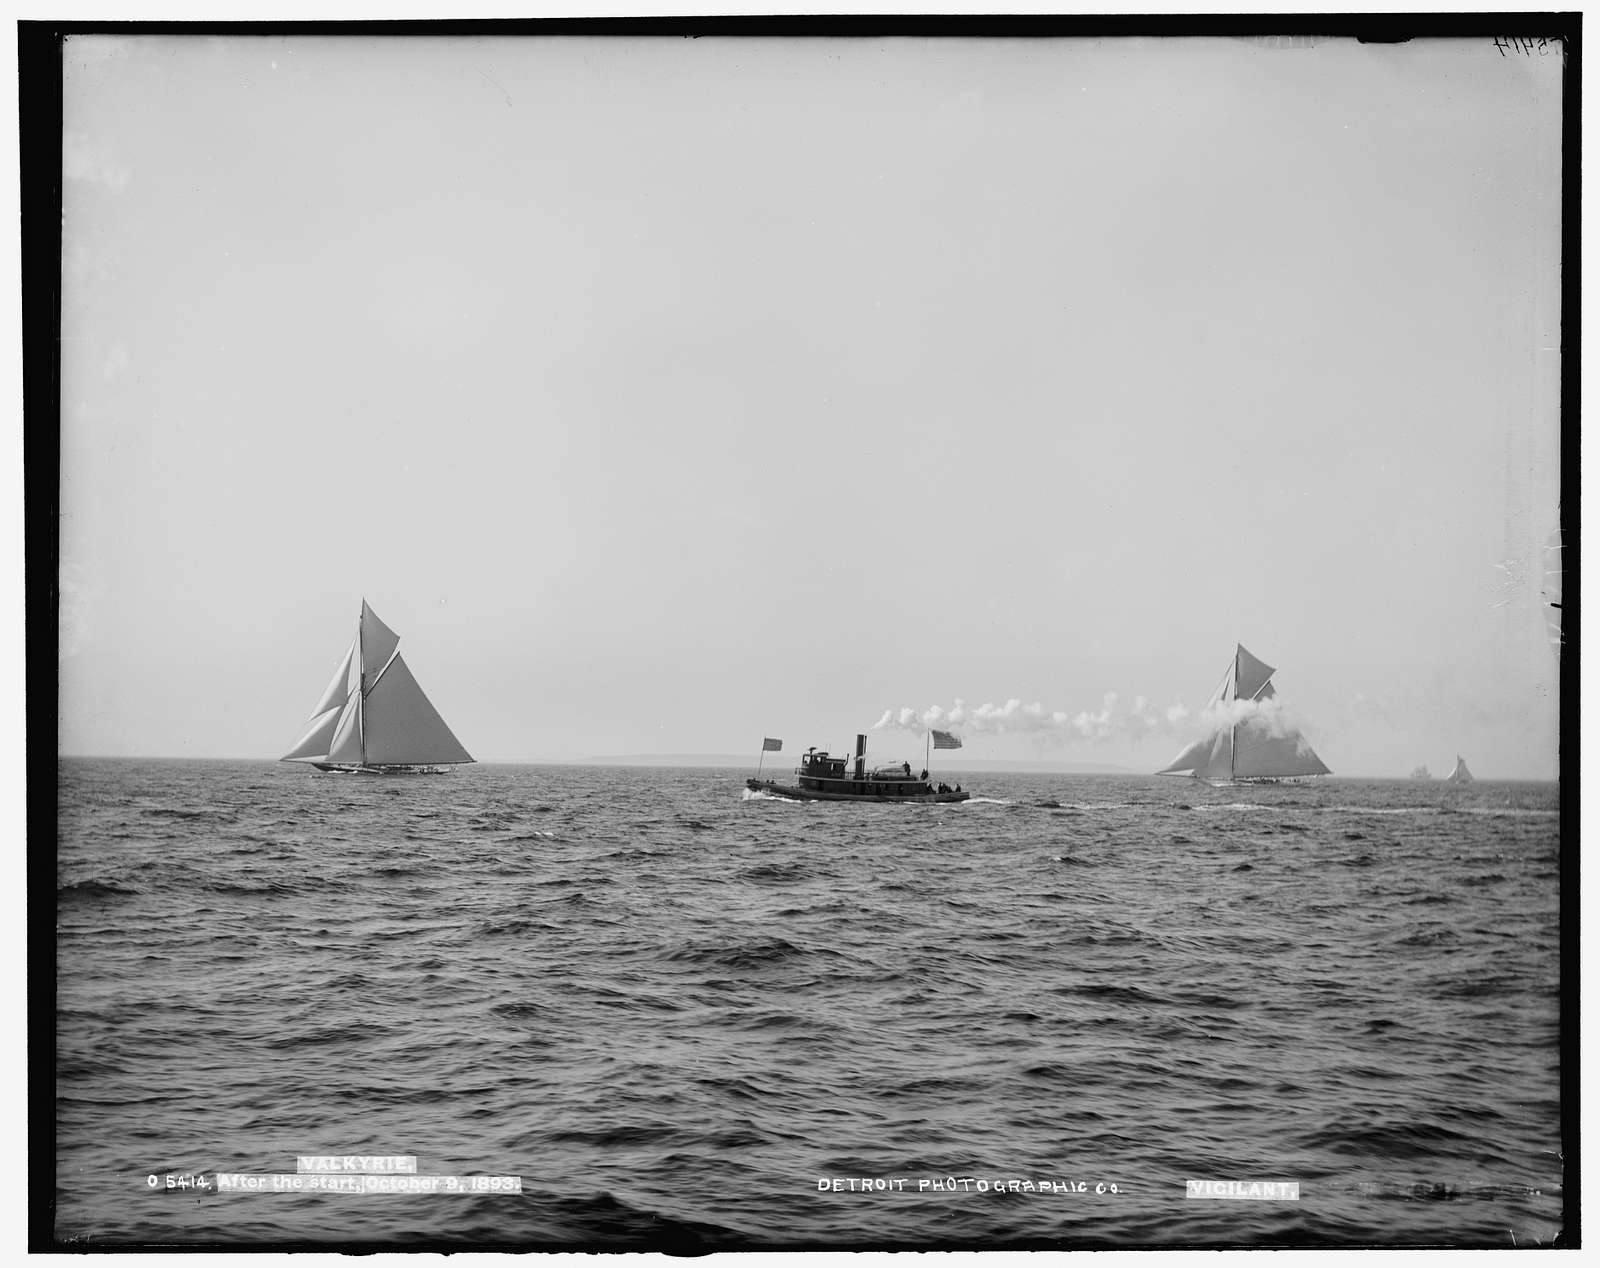 Valkyrie and Vigilant, after the start